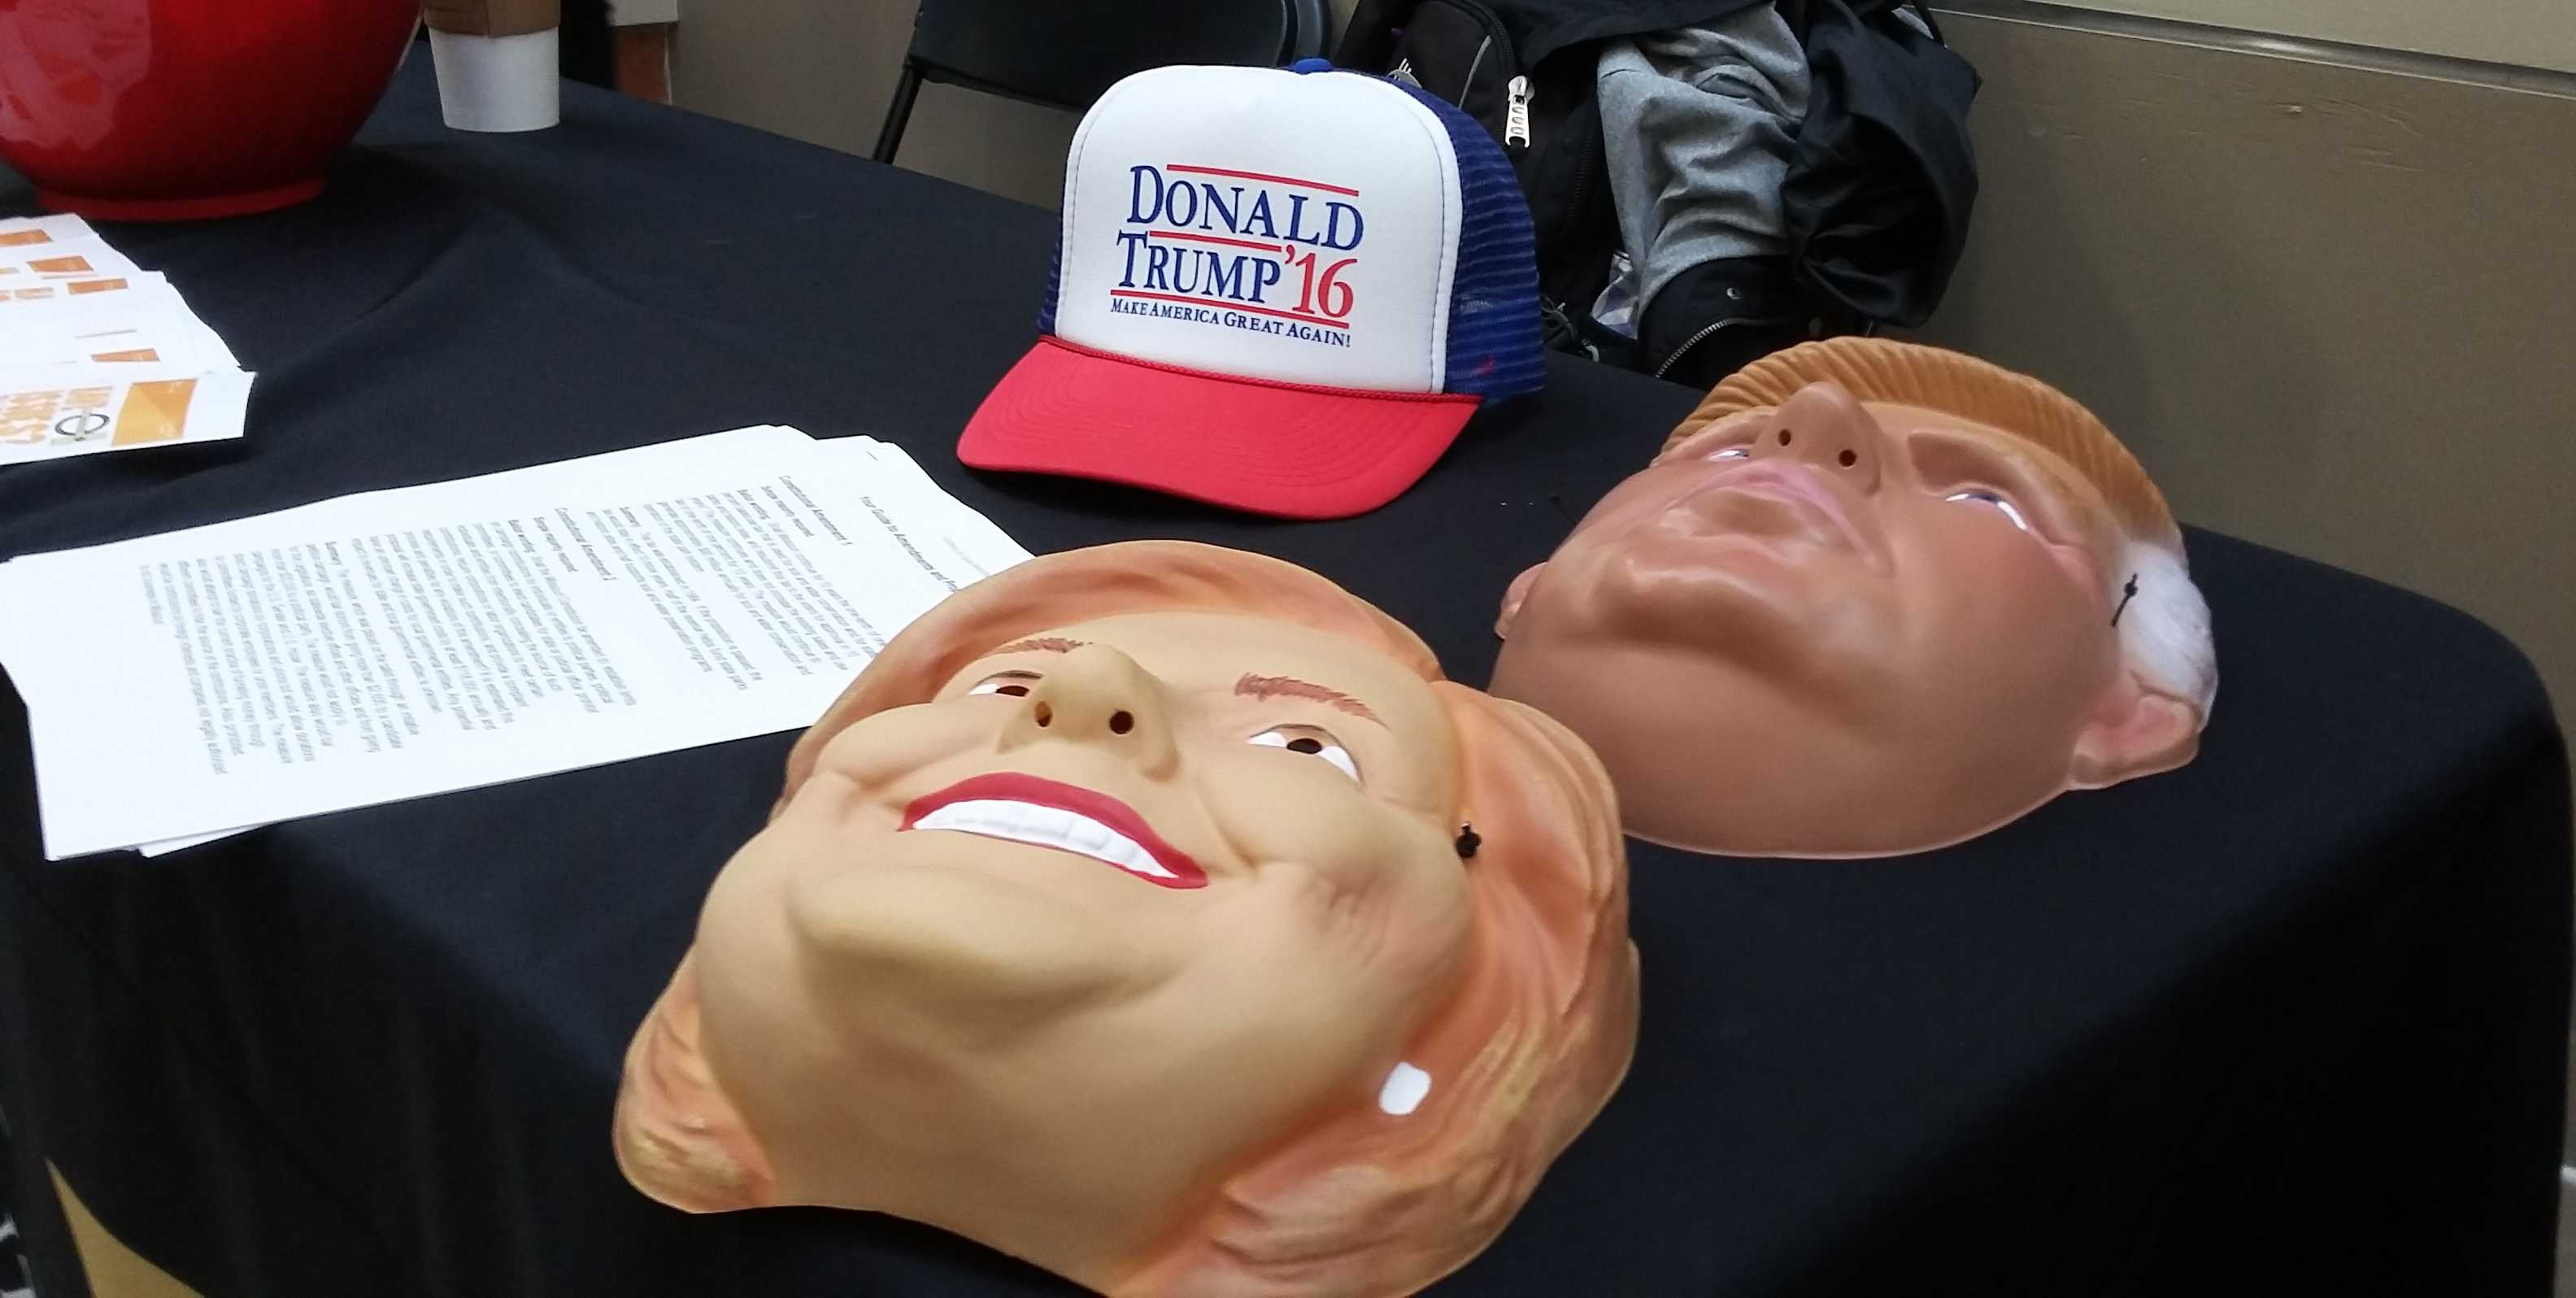 Photo by Tyler Tousley Masks of Donald Trump and Hillary Clinton were available for students to try on and take pictures in.